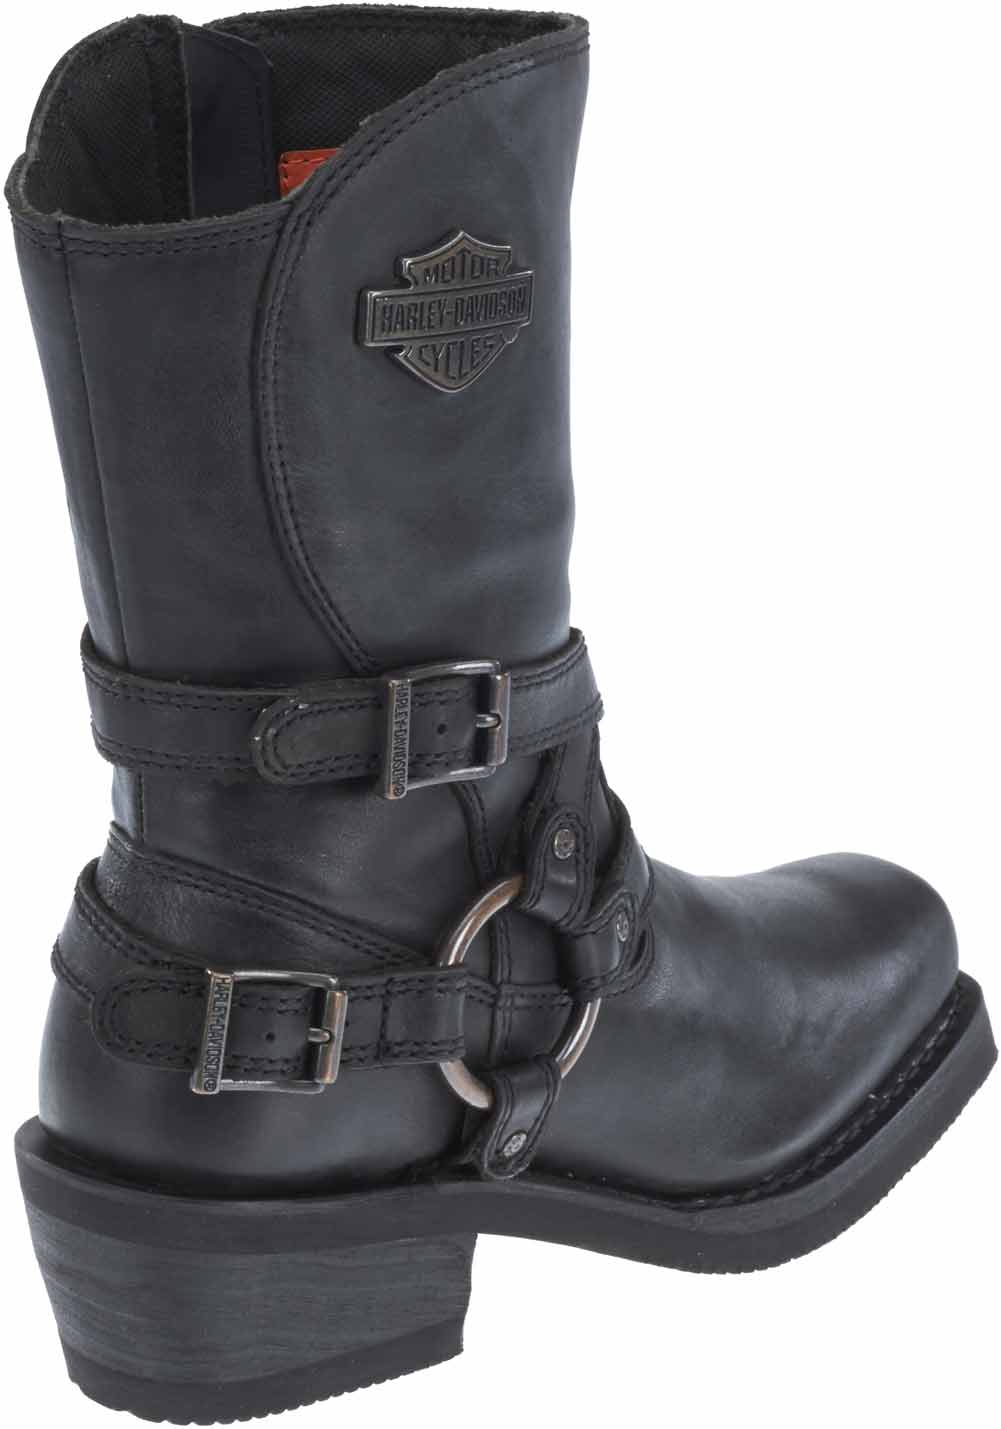 Amazing HarleyDavidson Womens Stylewood Leather Boots  Brown